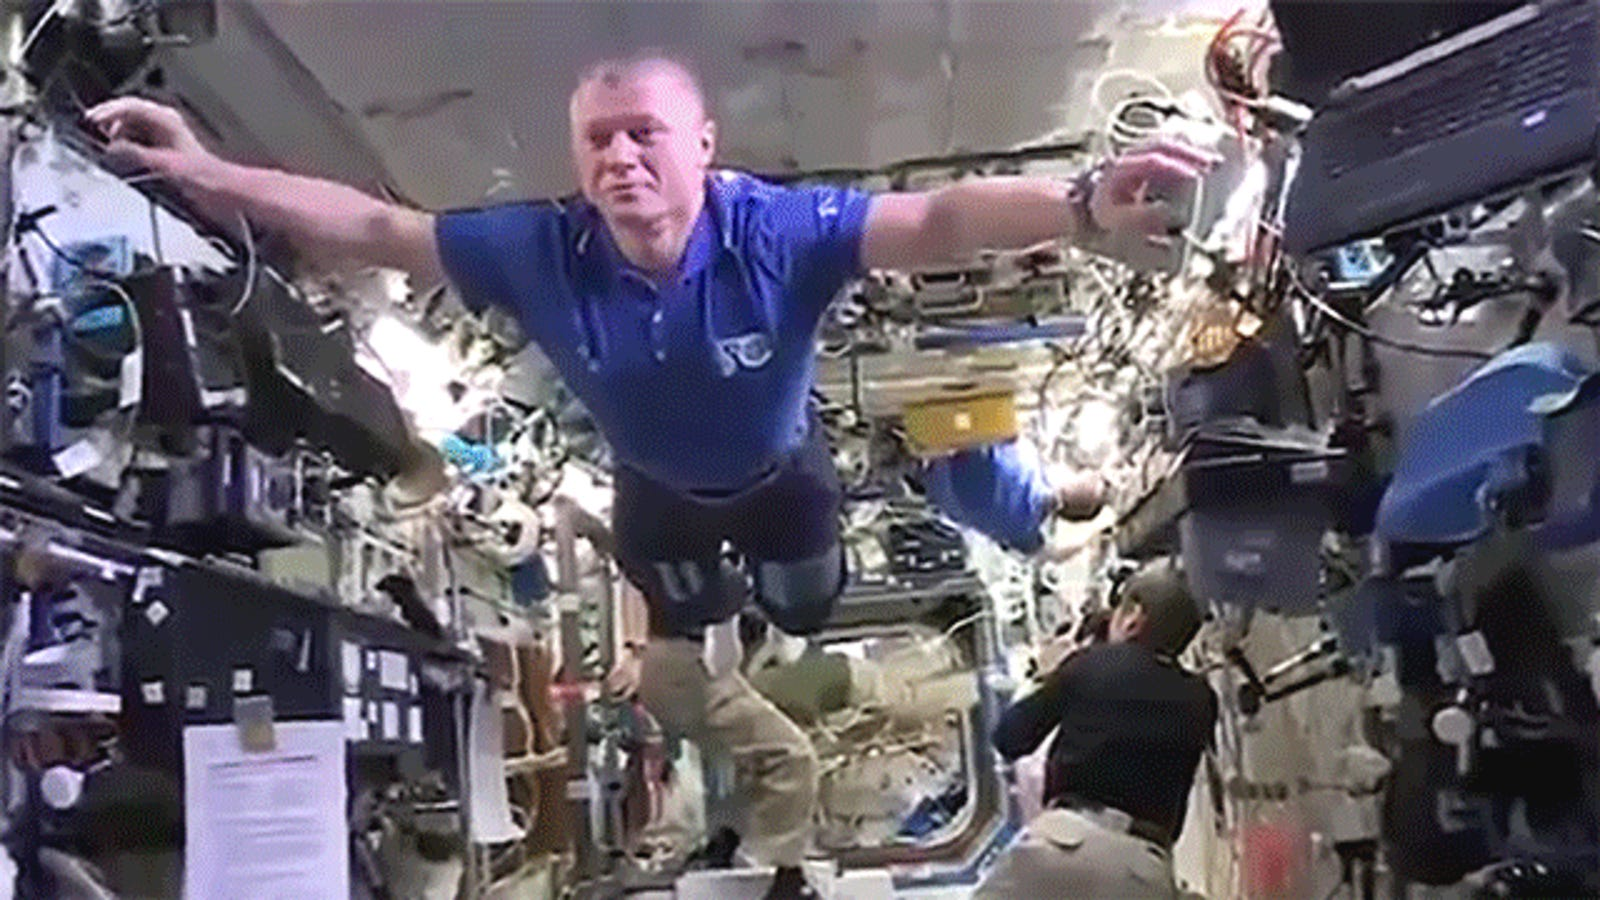 The Mannequin Challenge in Microgravity Puts All the Others to Shame